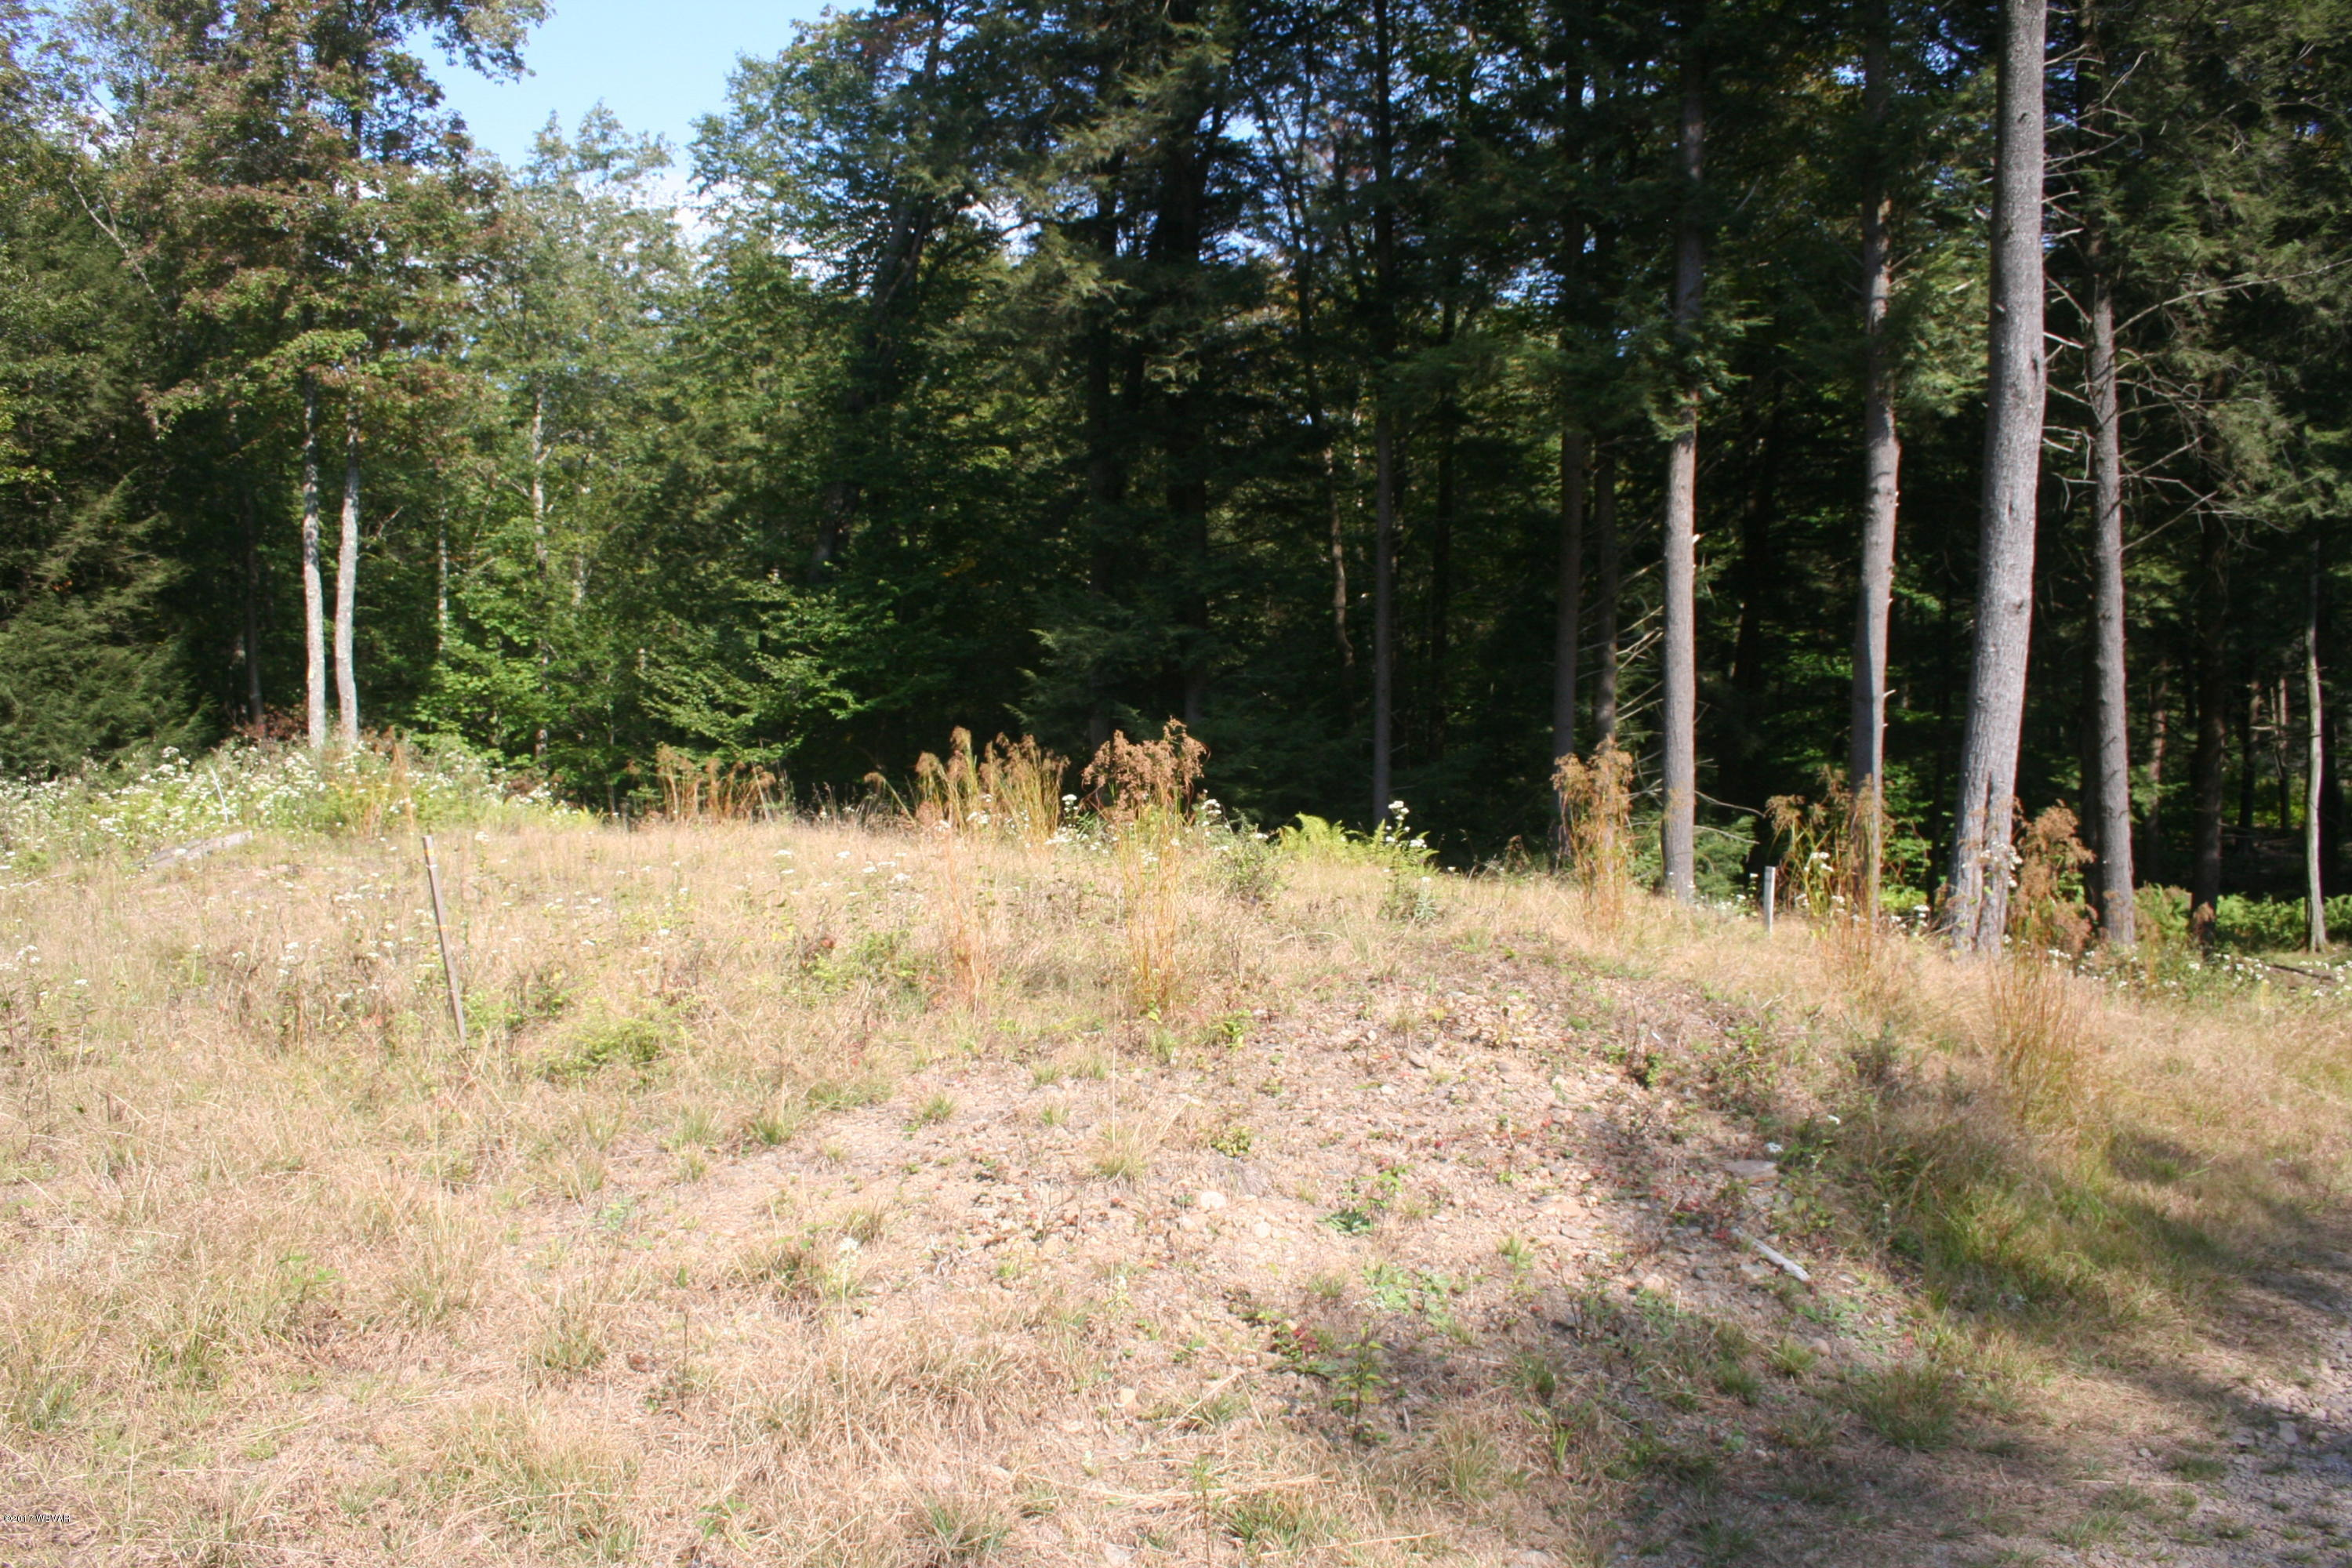 15541 ROUTE 42 HIGHWAY, Eagles Mere, PA 17731, ,Land,For sale,ROUTE 42,WB-91926